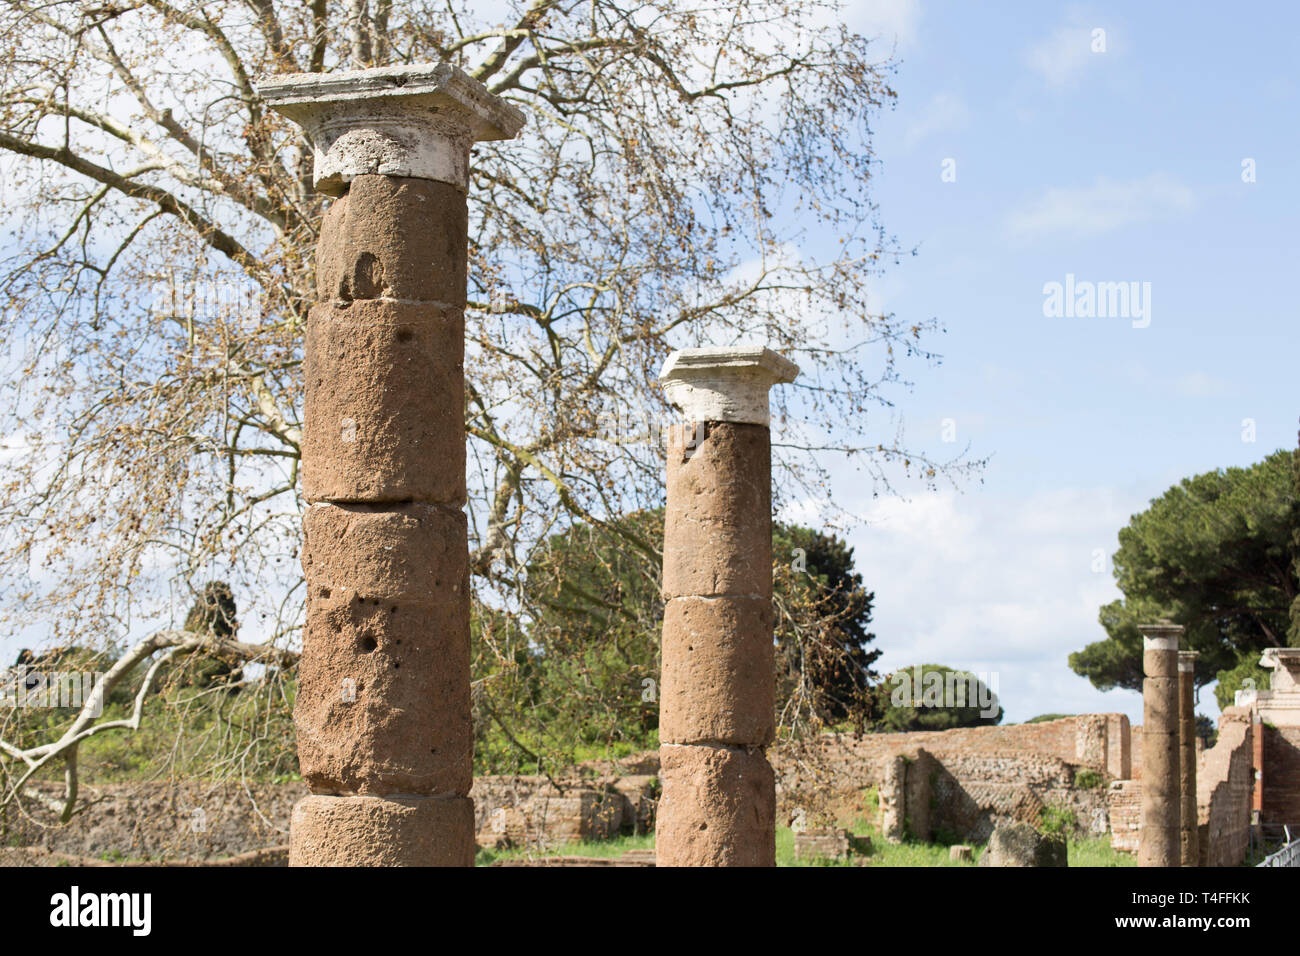 Landscape at archaeological excavations in Ostia Antica : the perspective view of the Roman columns - selected focus on first column - Stock Image